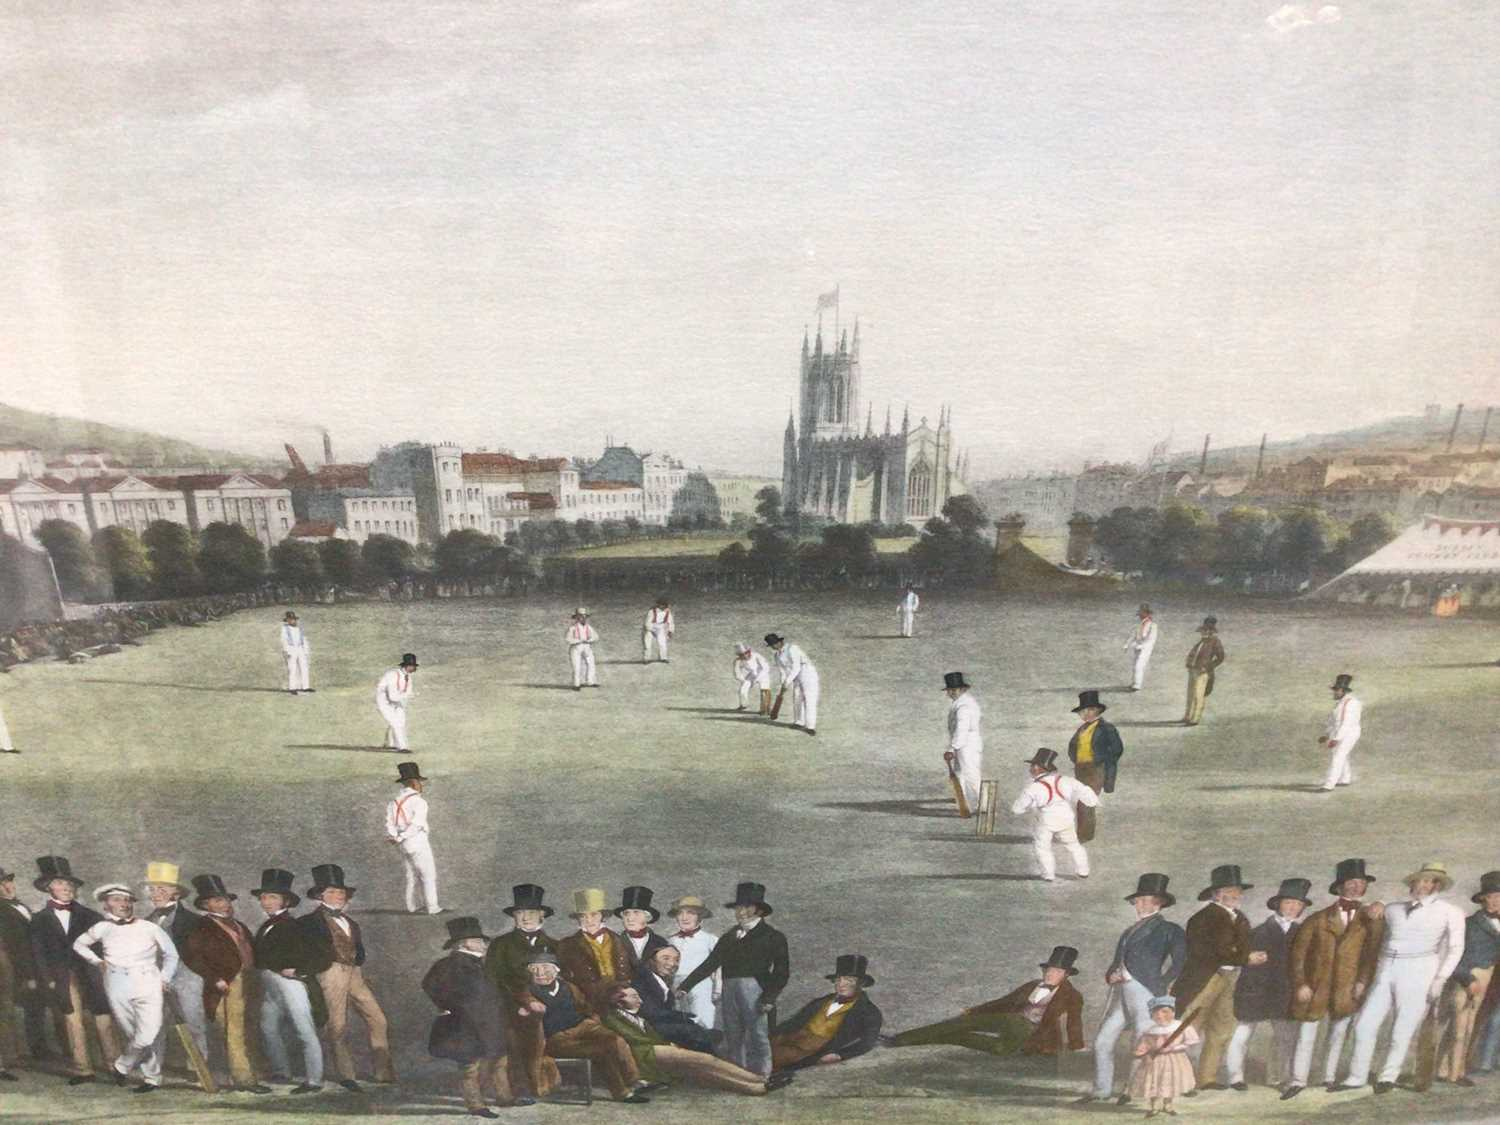 19th century-style coloured print - The Cricket Match between Sussex & Kent, at Brighton, 48cm x 66c